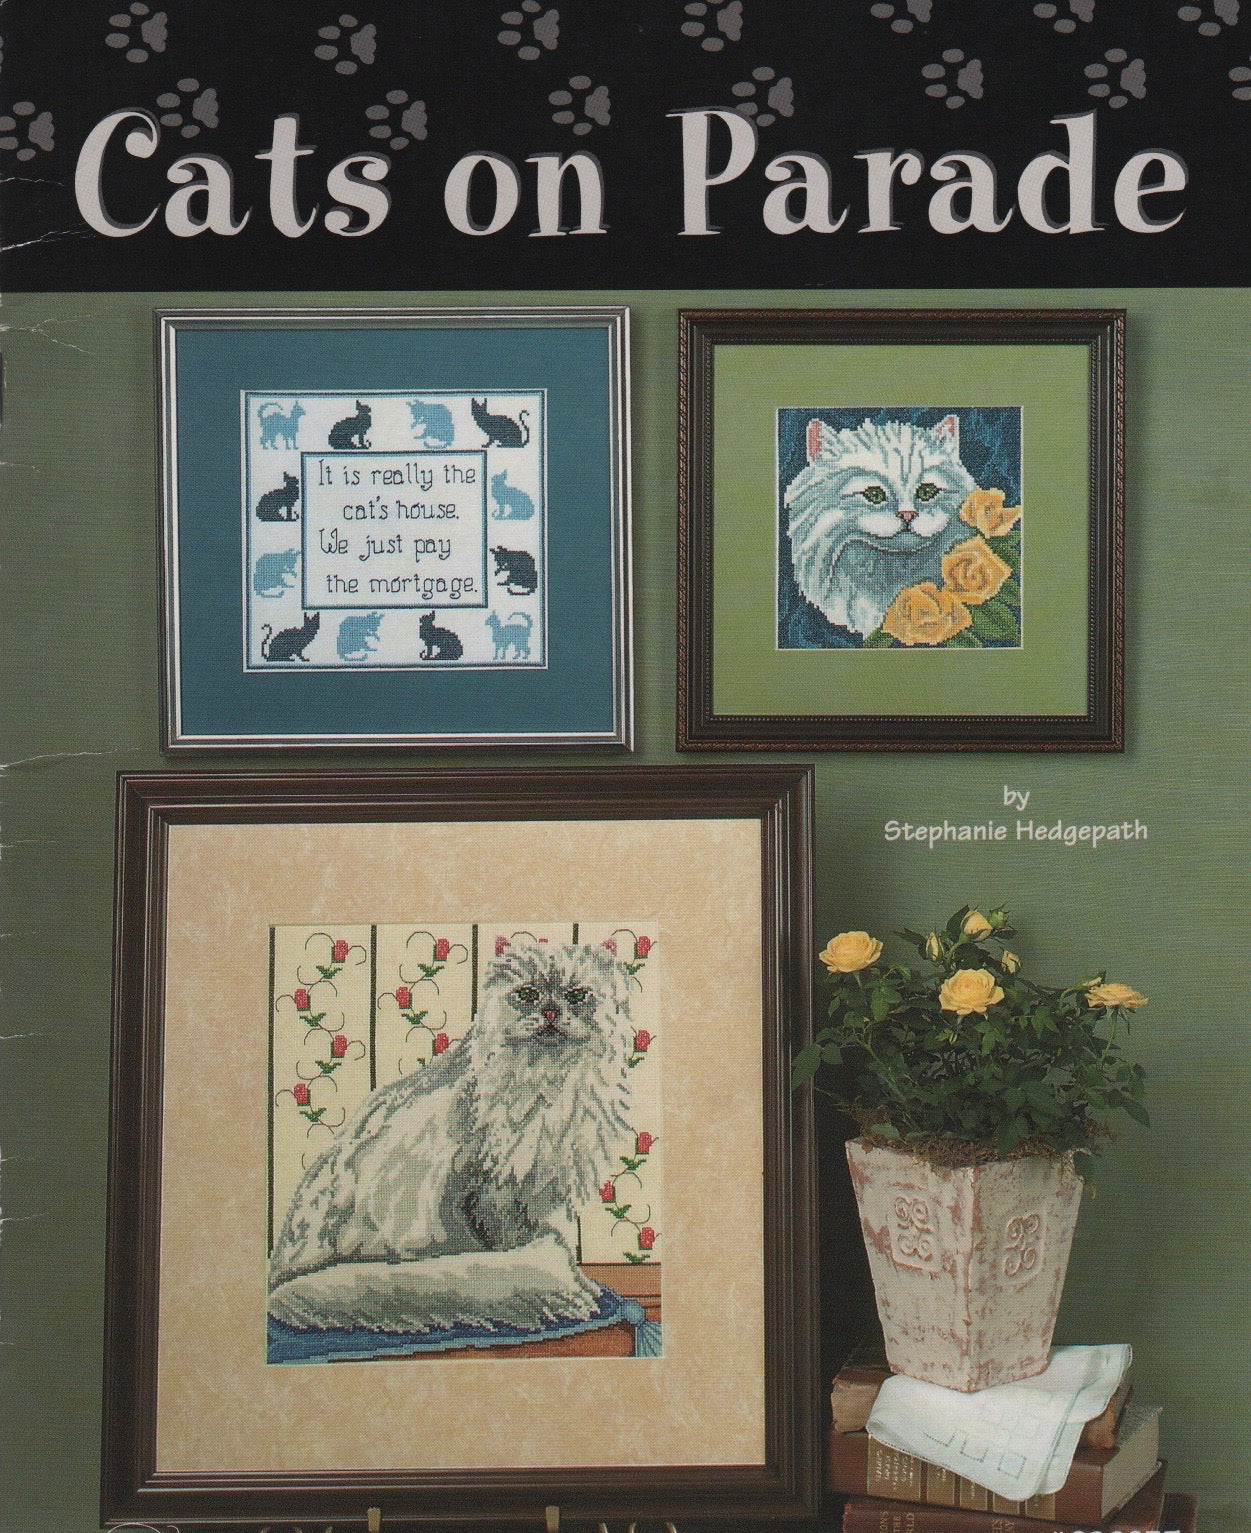 Cats on Parade